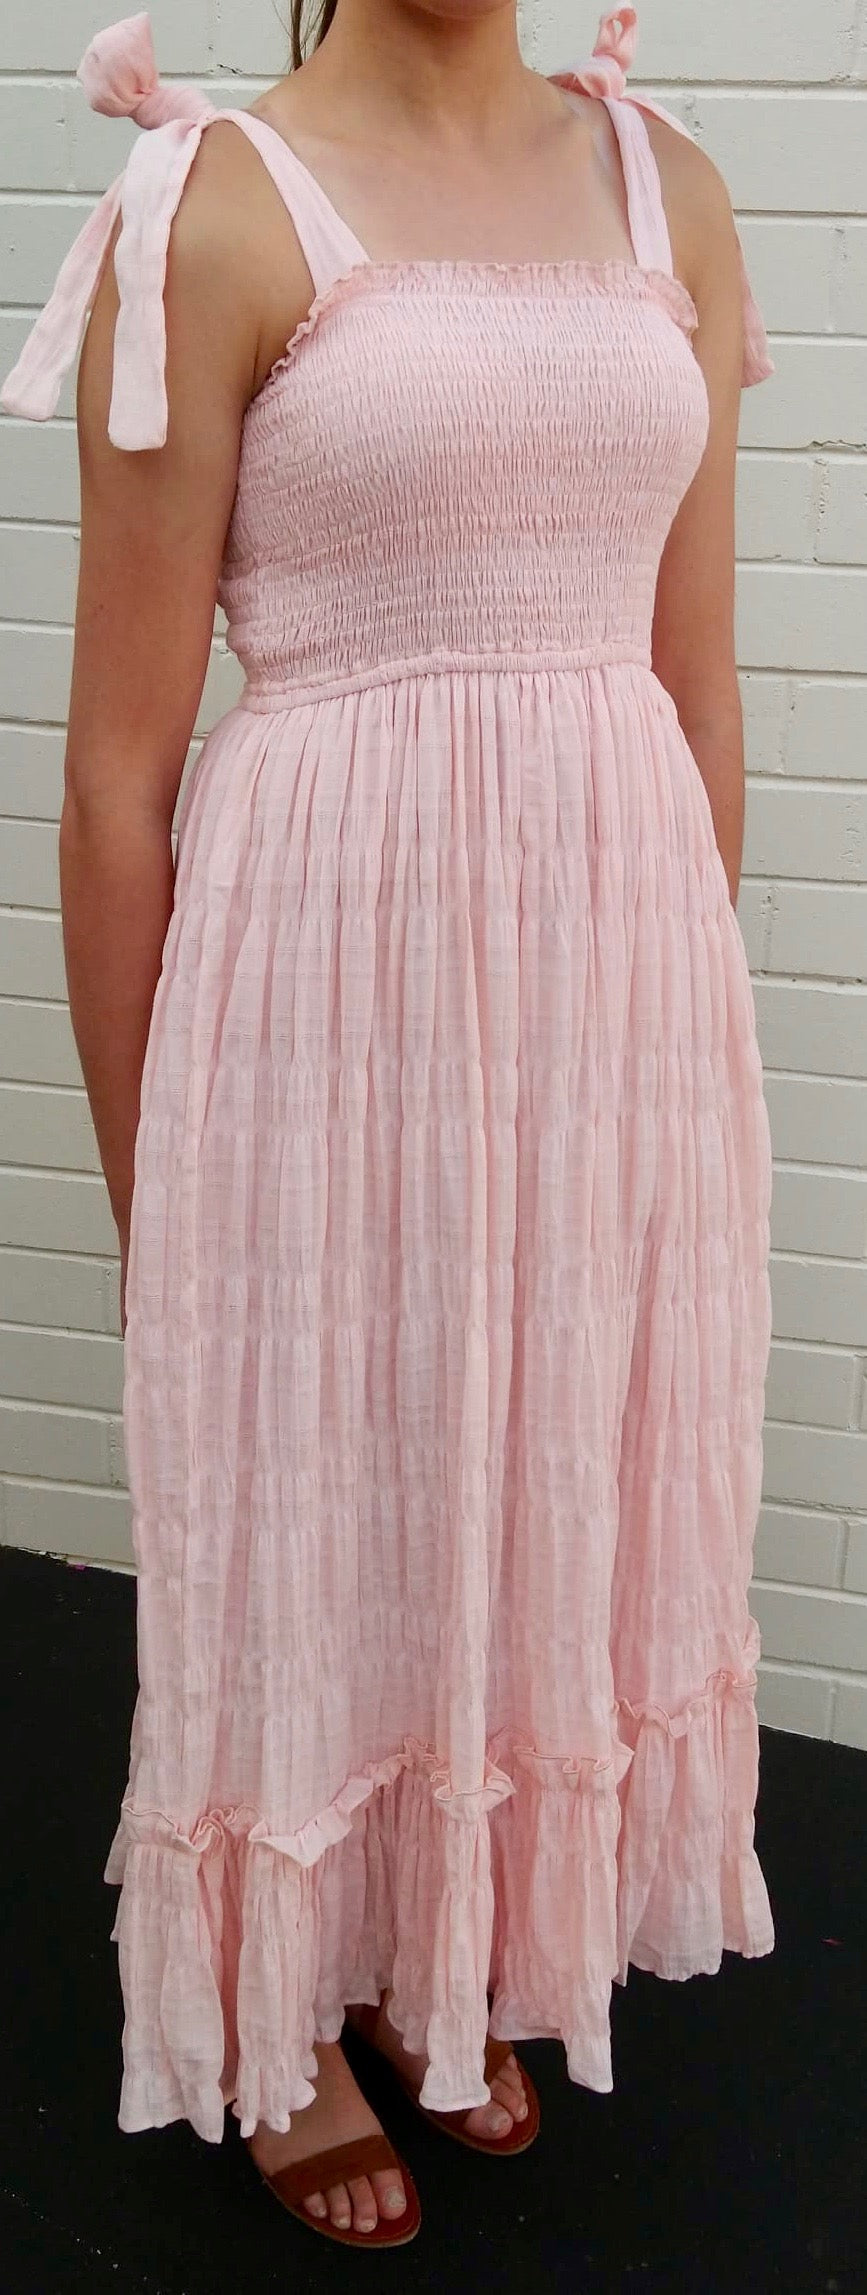 'Clarabelle' Dress in Peach